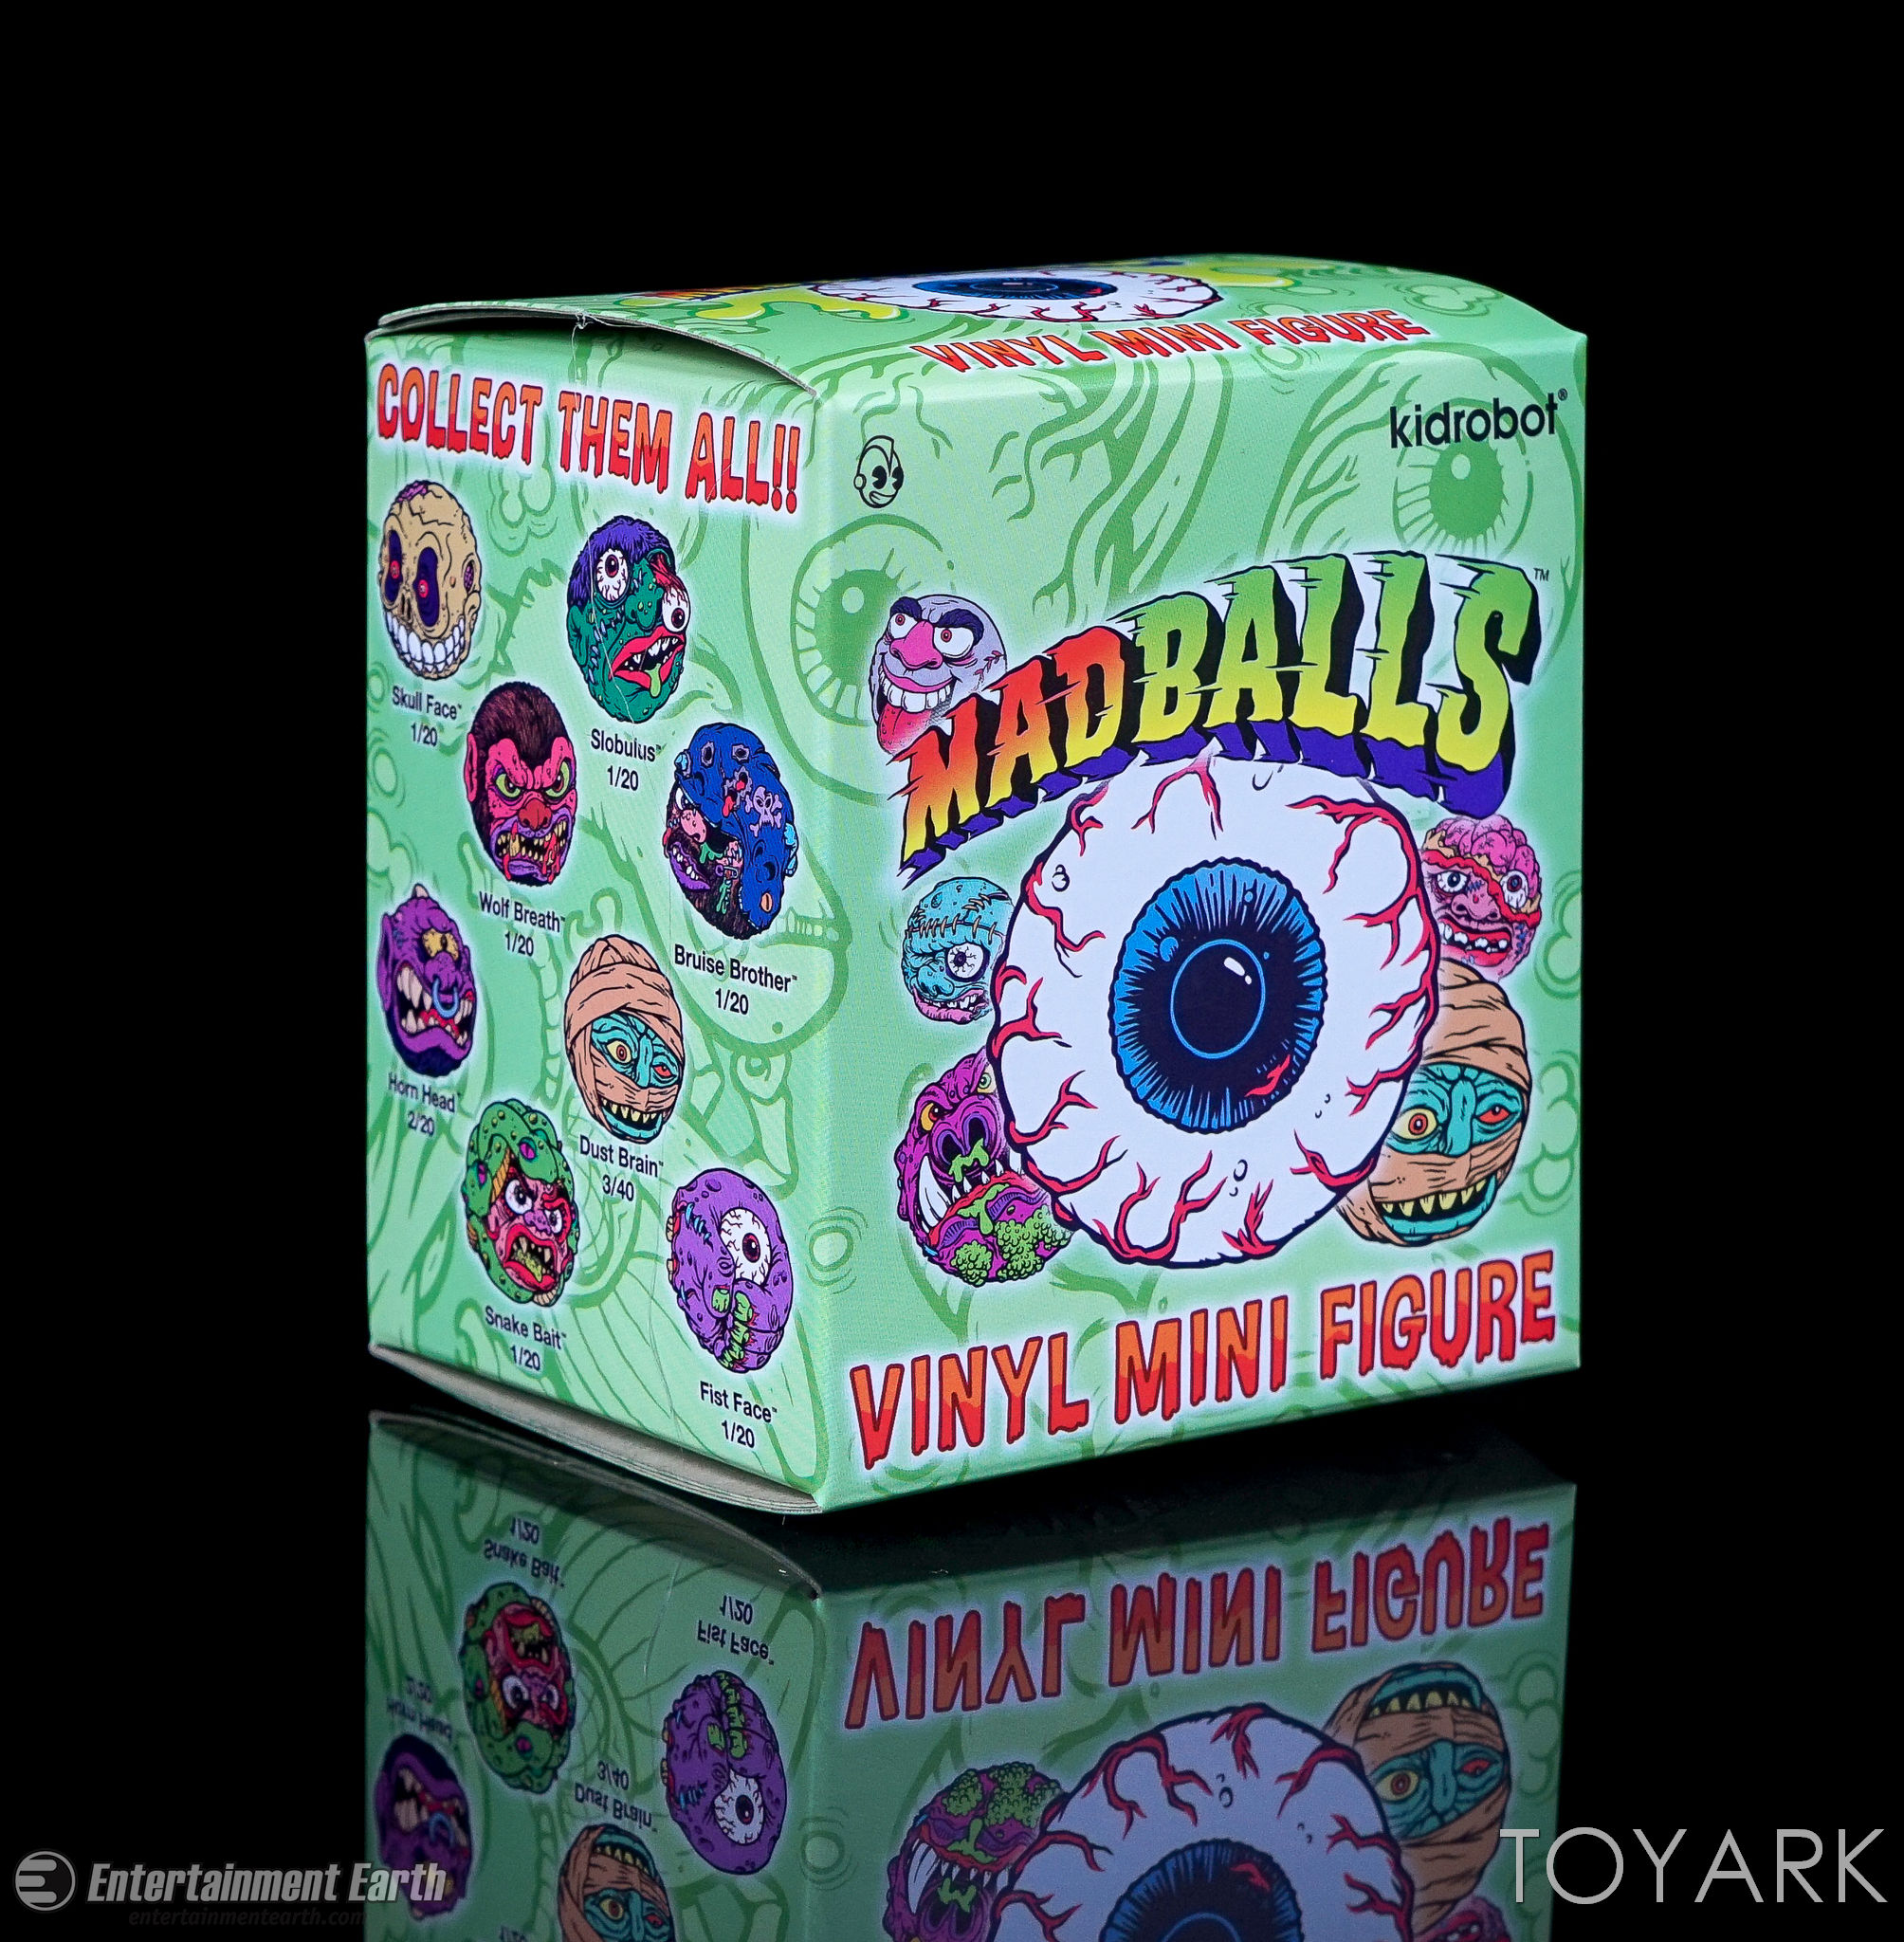 http://news.toyark.com/wp-content/uploads/sites/4/2017/02/Kidrobot-Madballs-Blind-Box-008.jpg